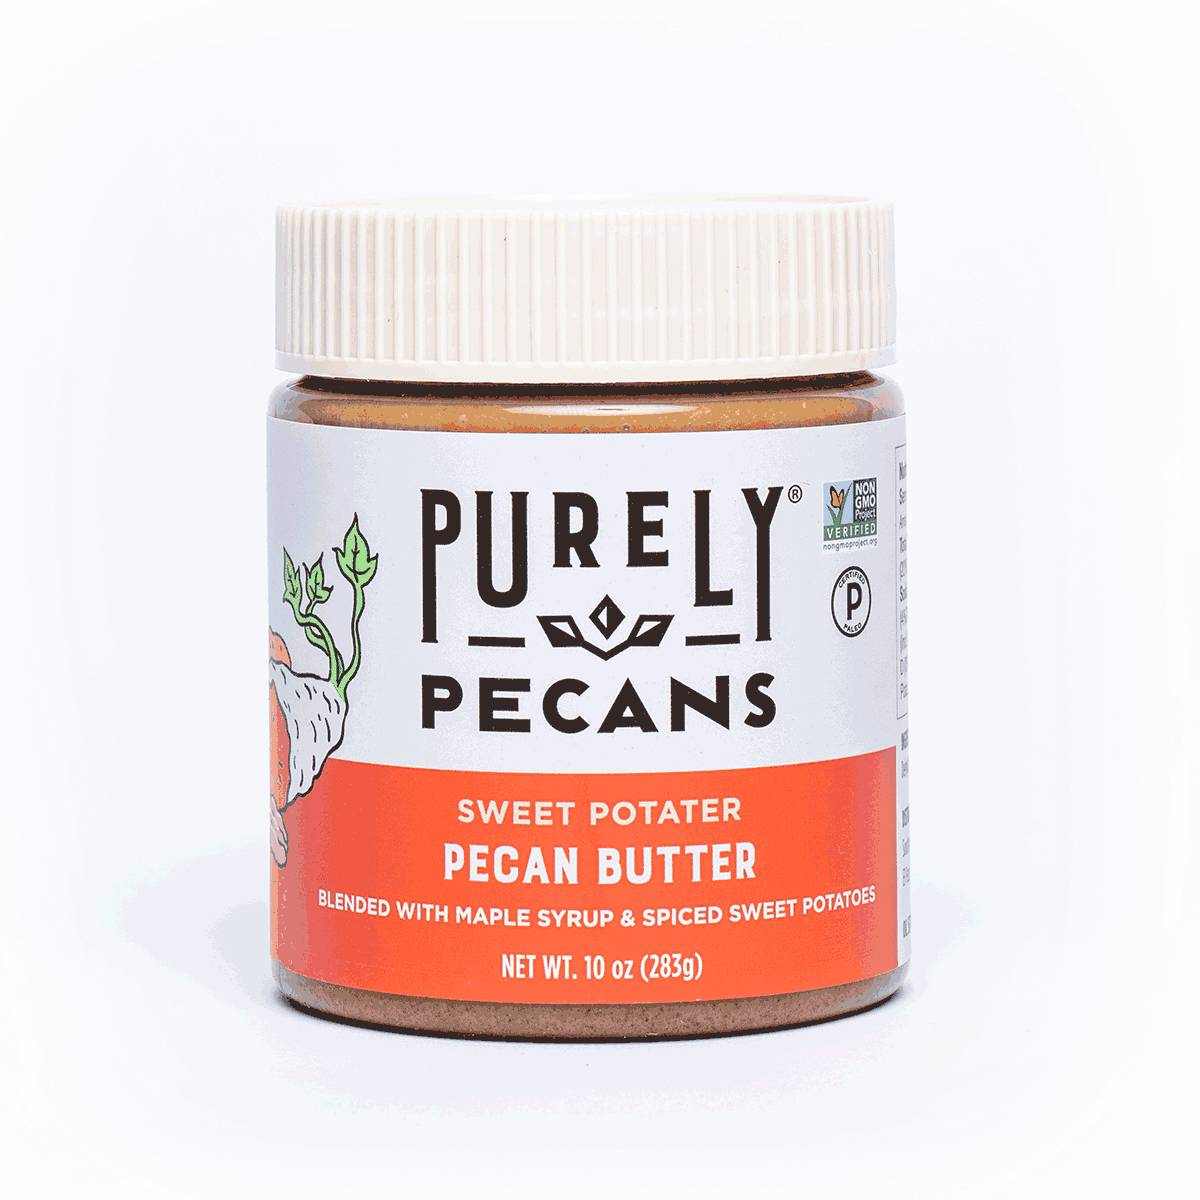 Sweet Potater Pecan Butter resize - Purely Pecans - Certified Paleo, PaleoVegan by the Paleo Foundation